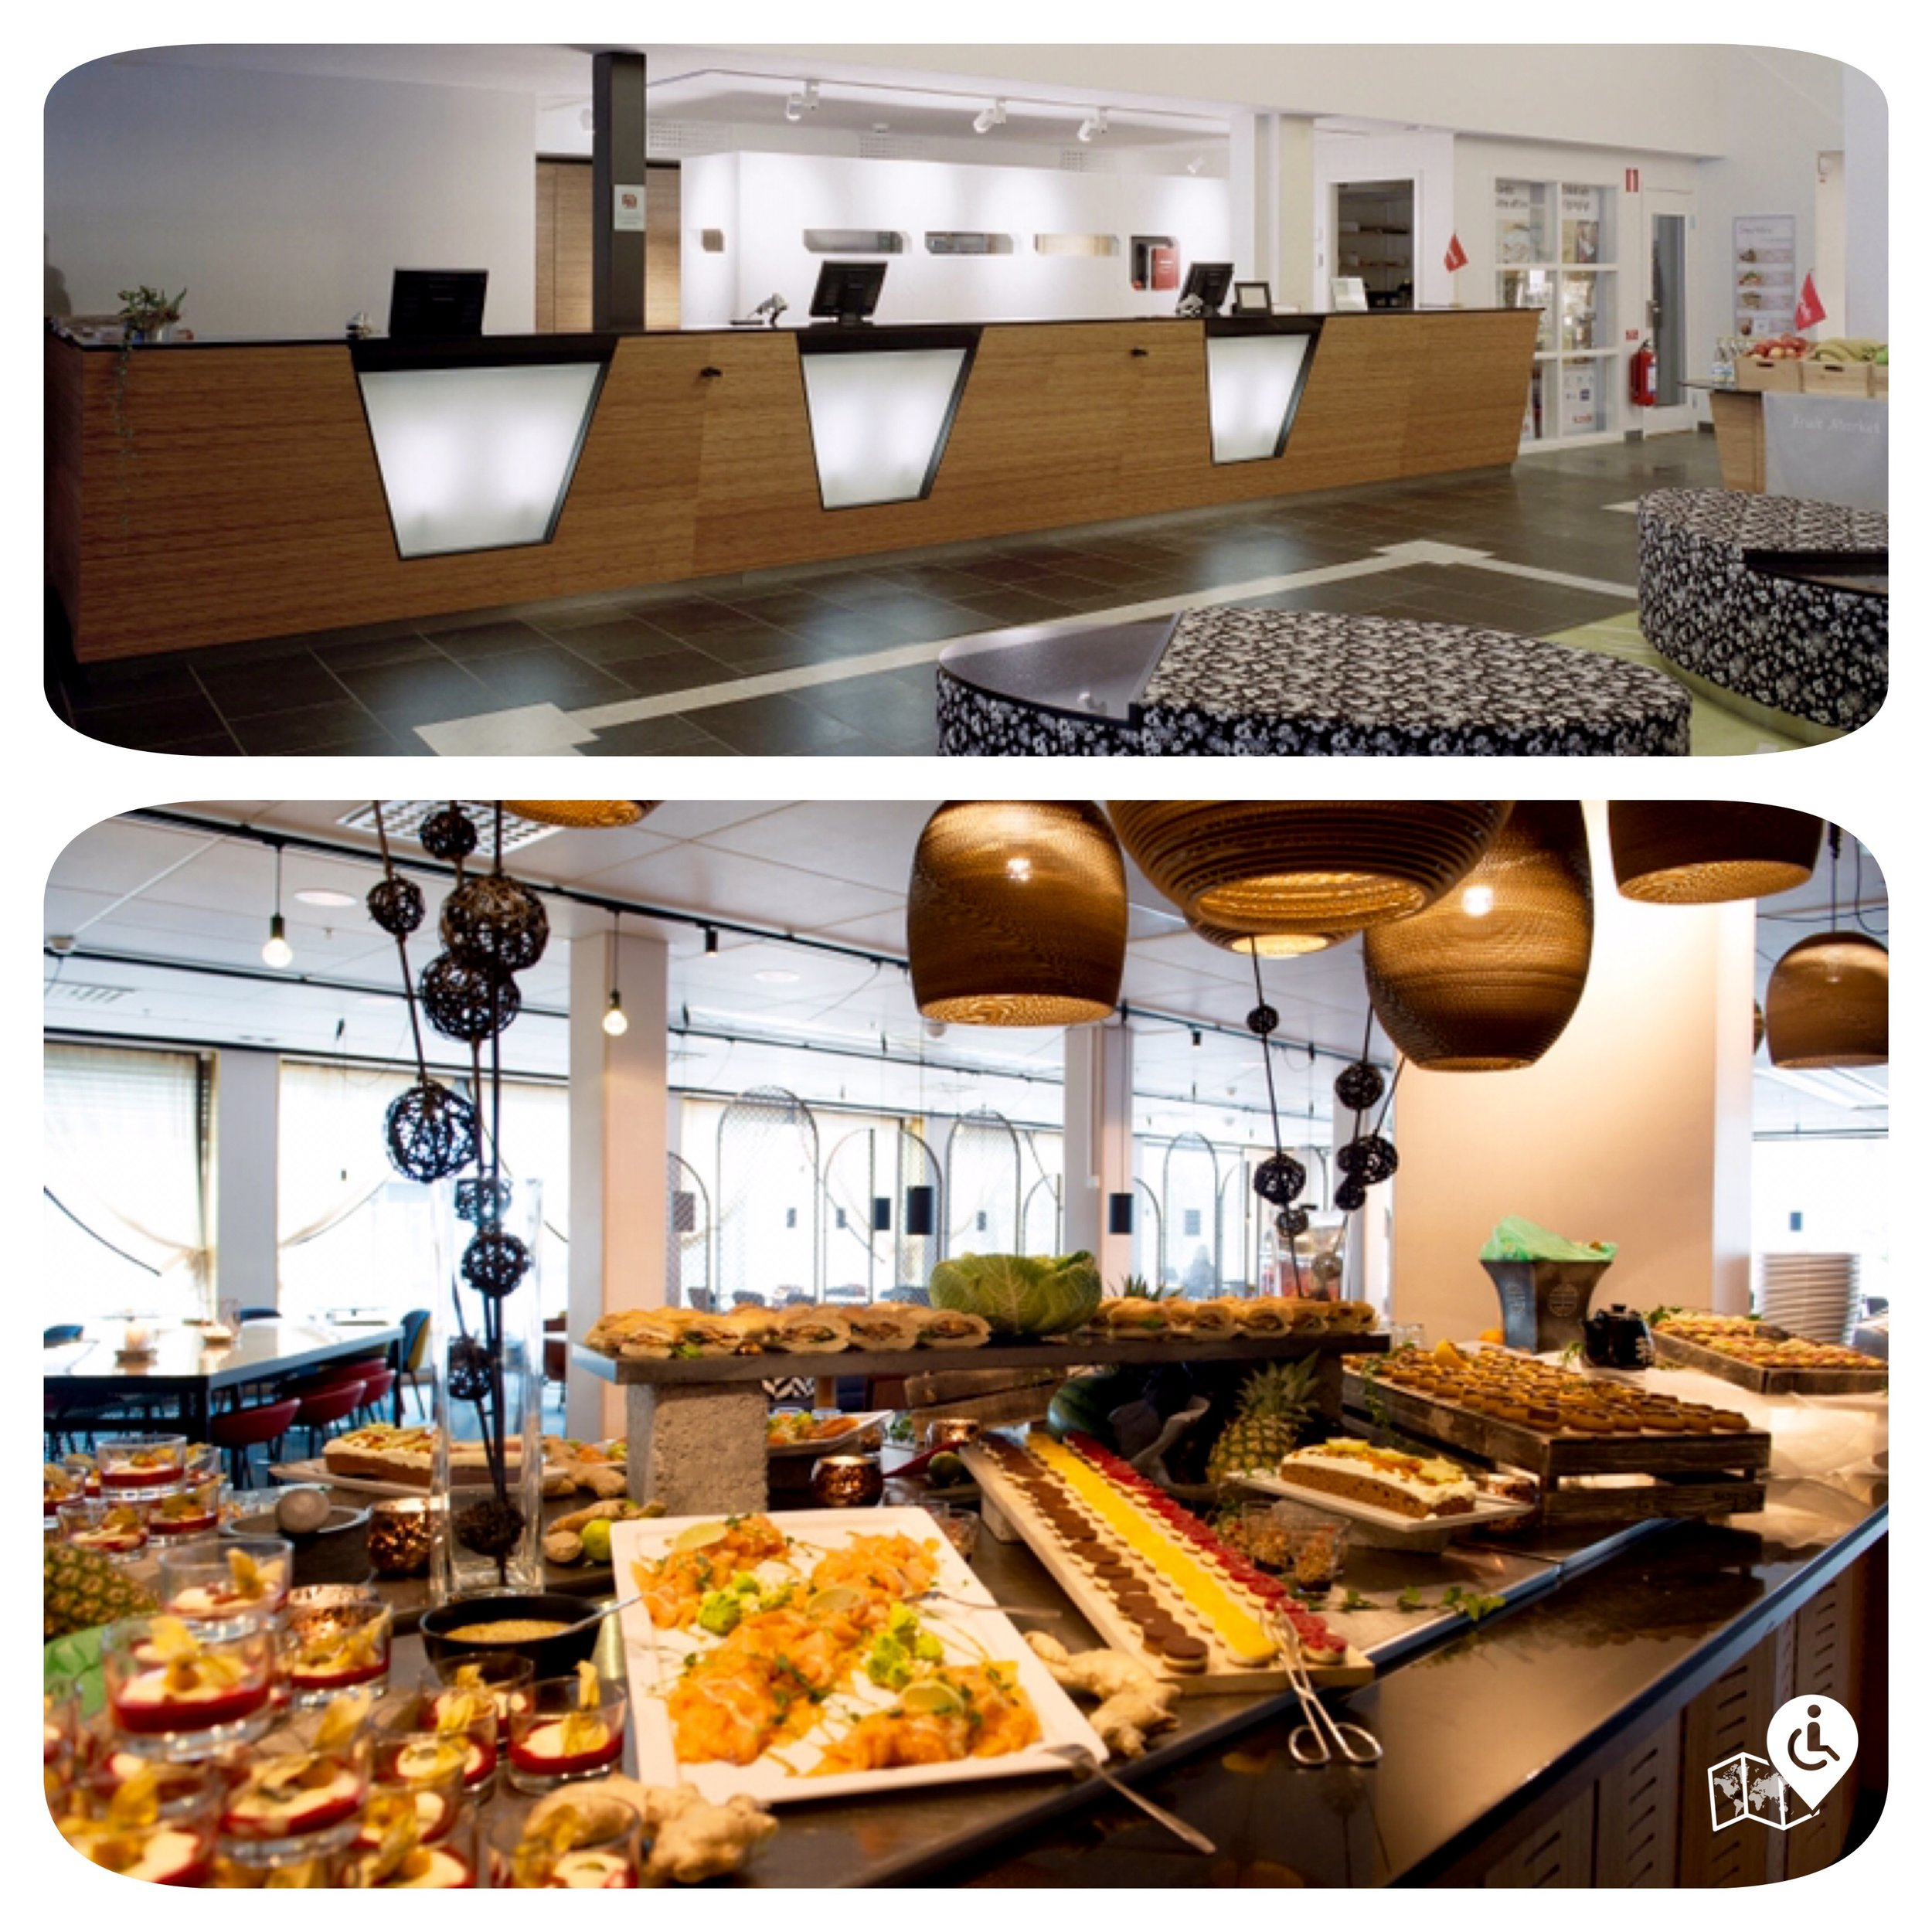 Breakfast buffet was amazing with loads of healthy choices and the staff were very friendly.